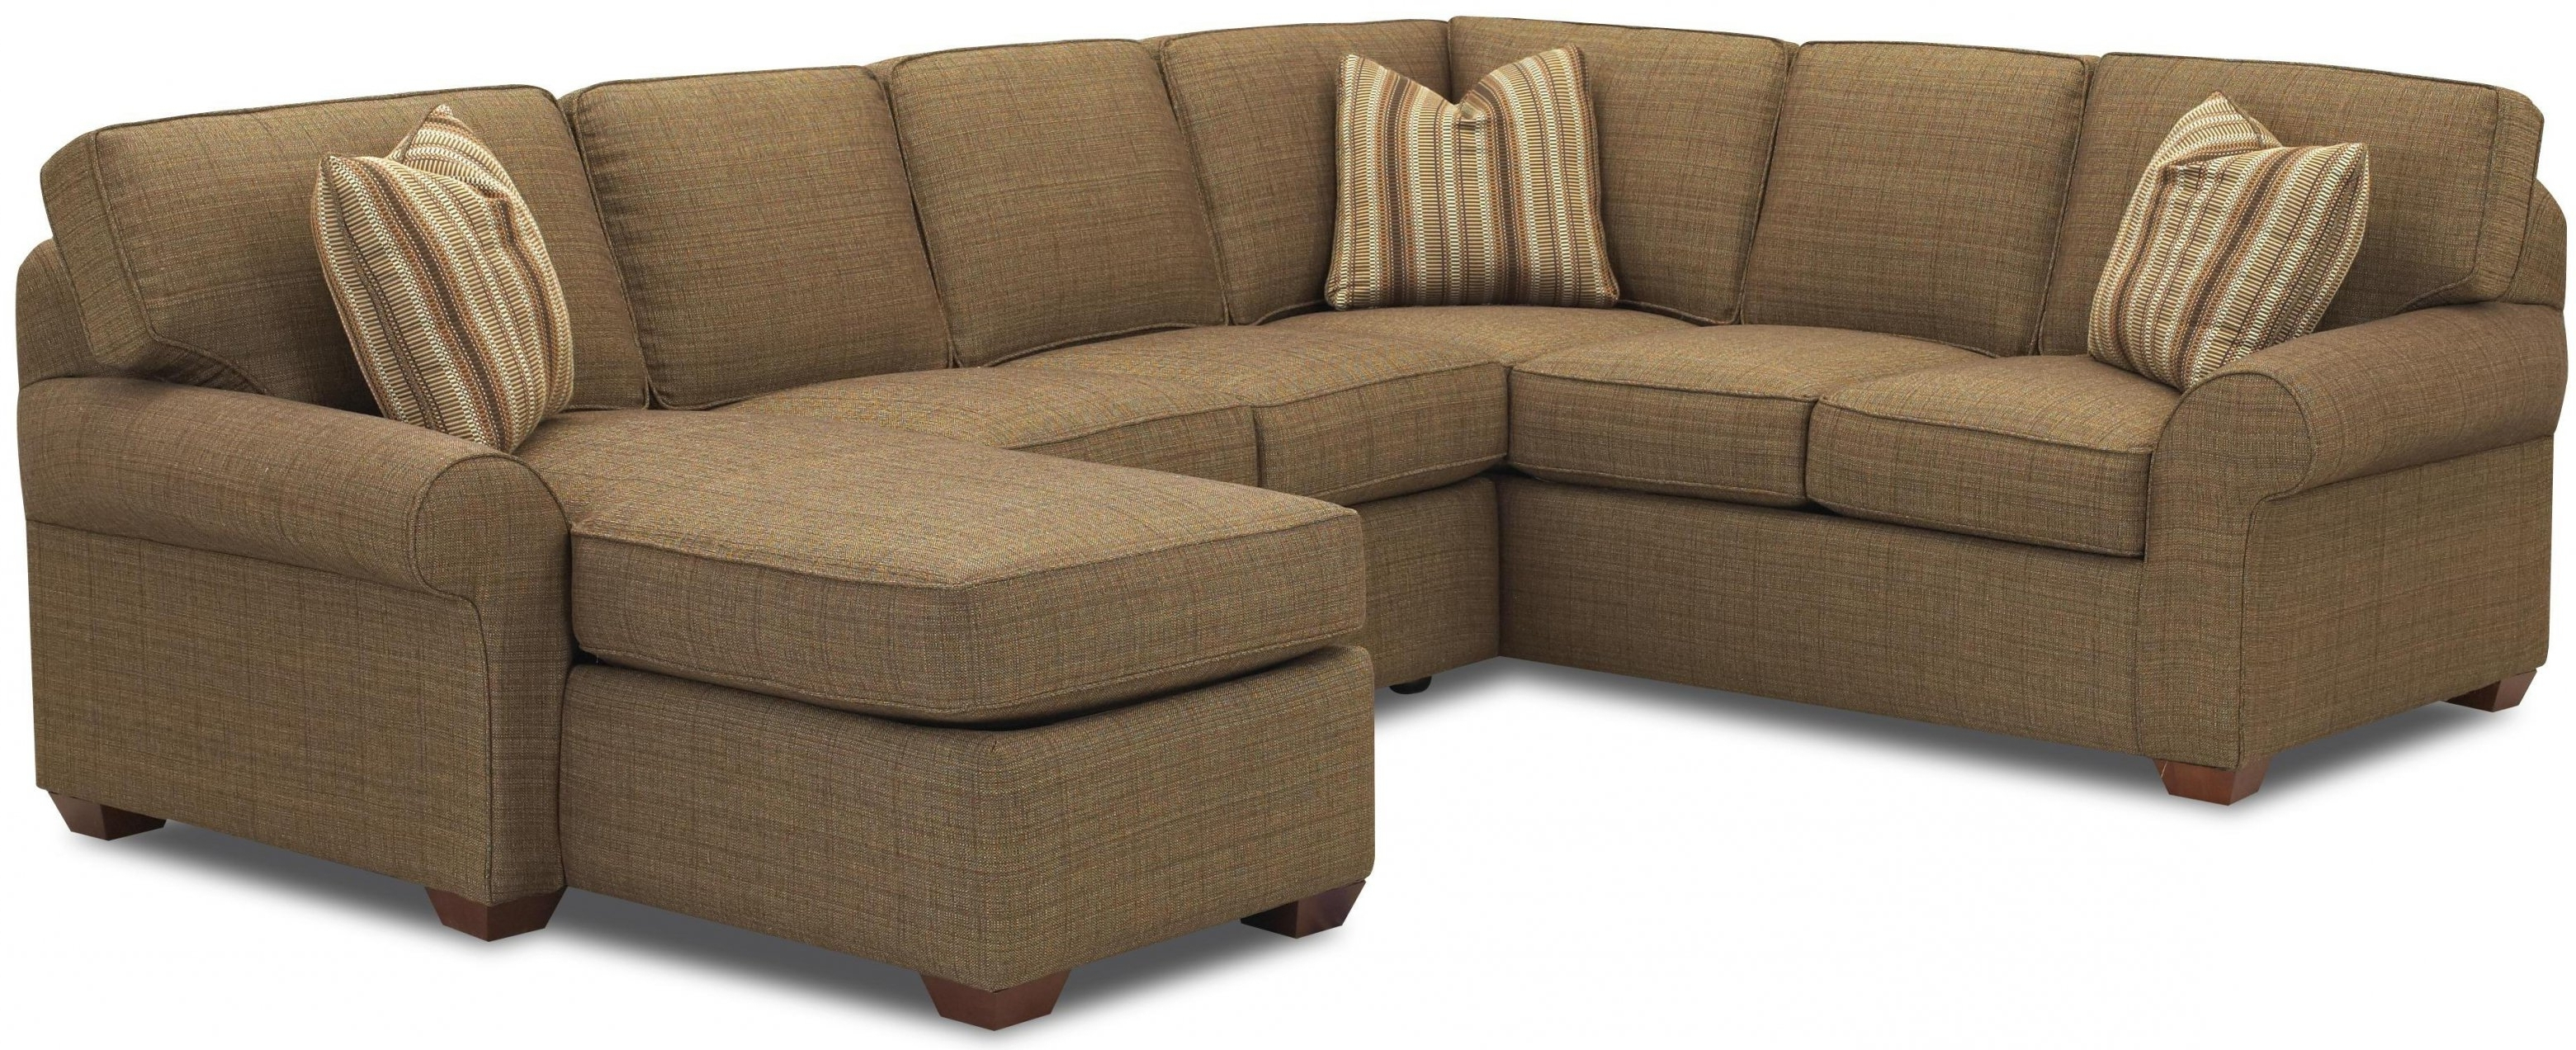 Famous Couch Chaise Lounges With Regard To Chaise Lounge Sofa (View 7 of 15)